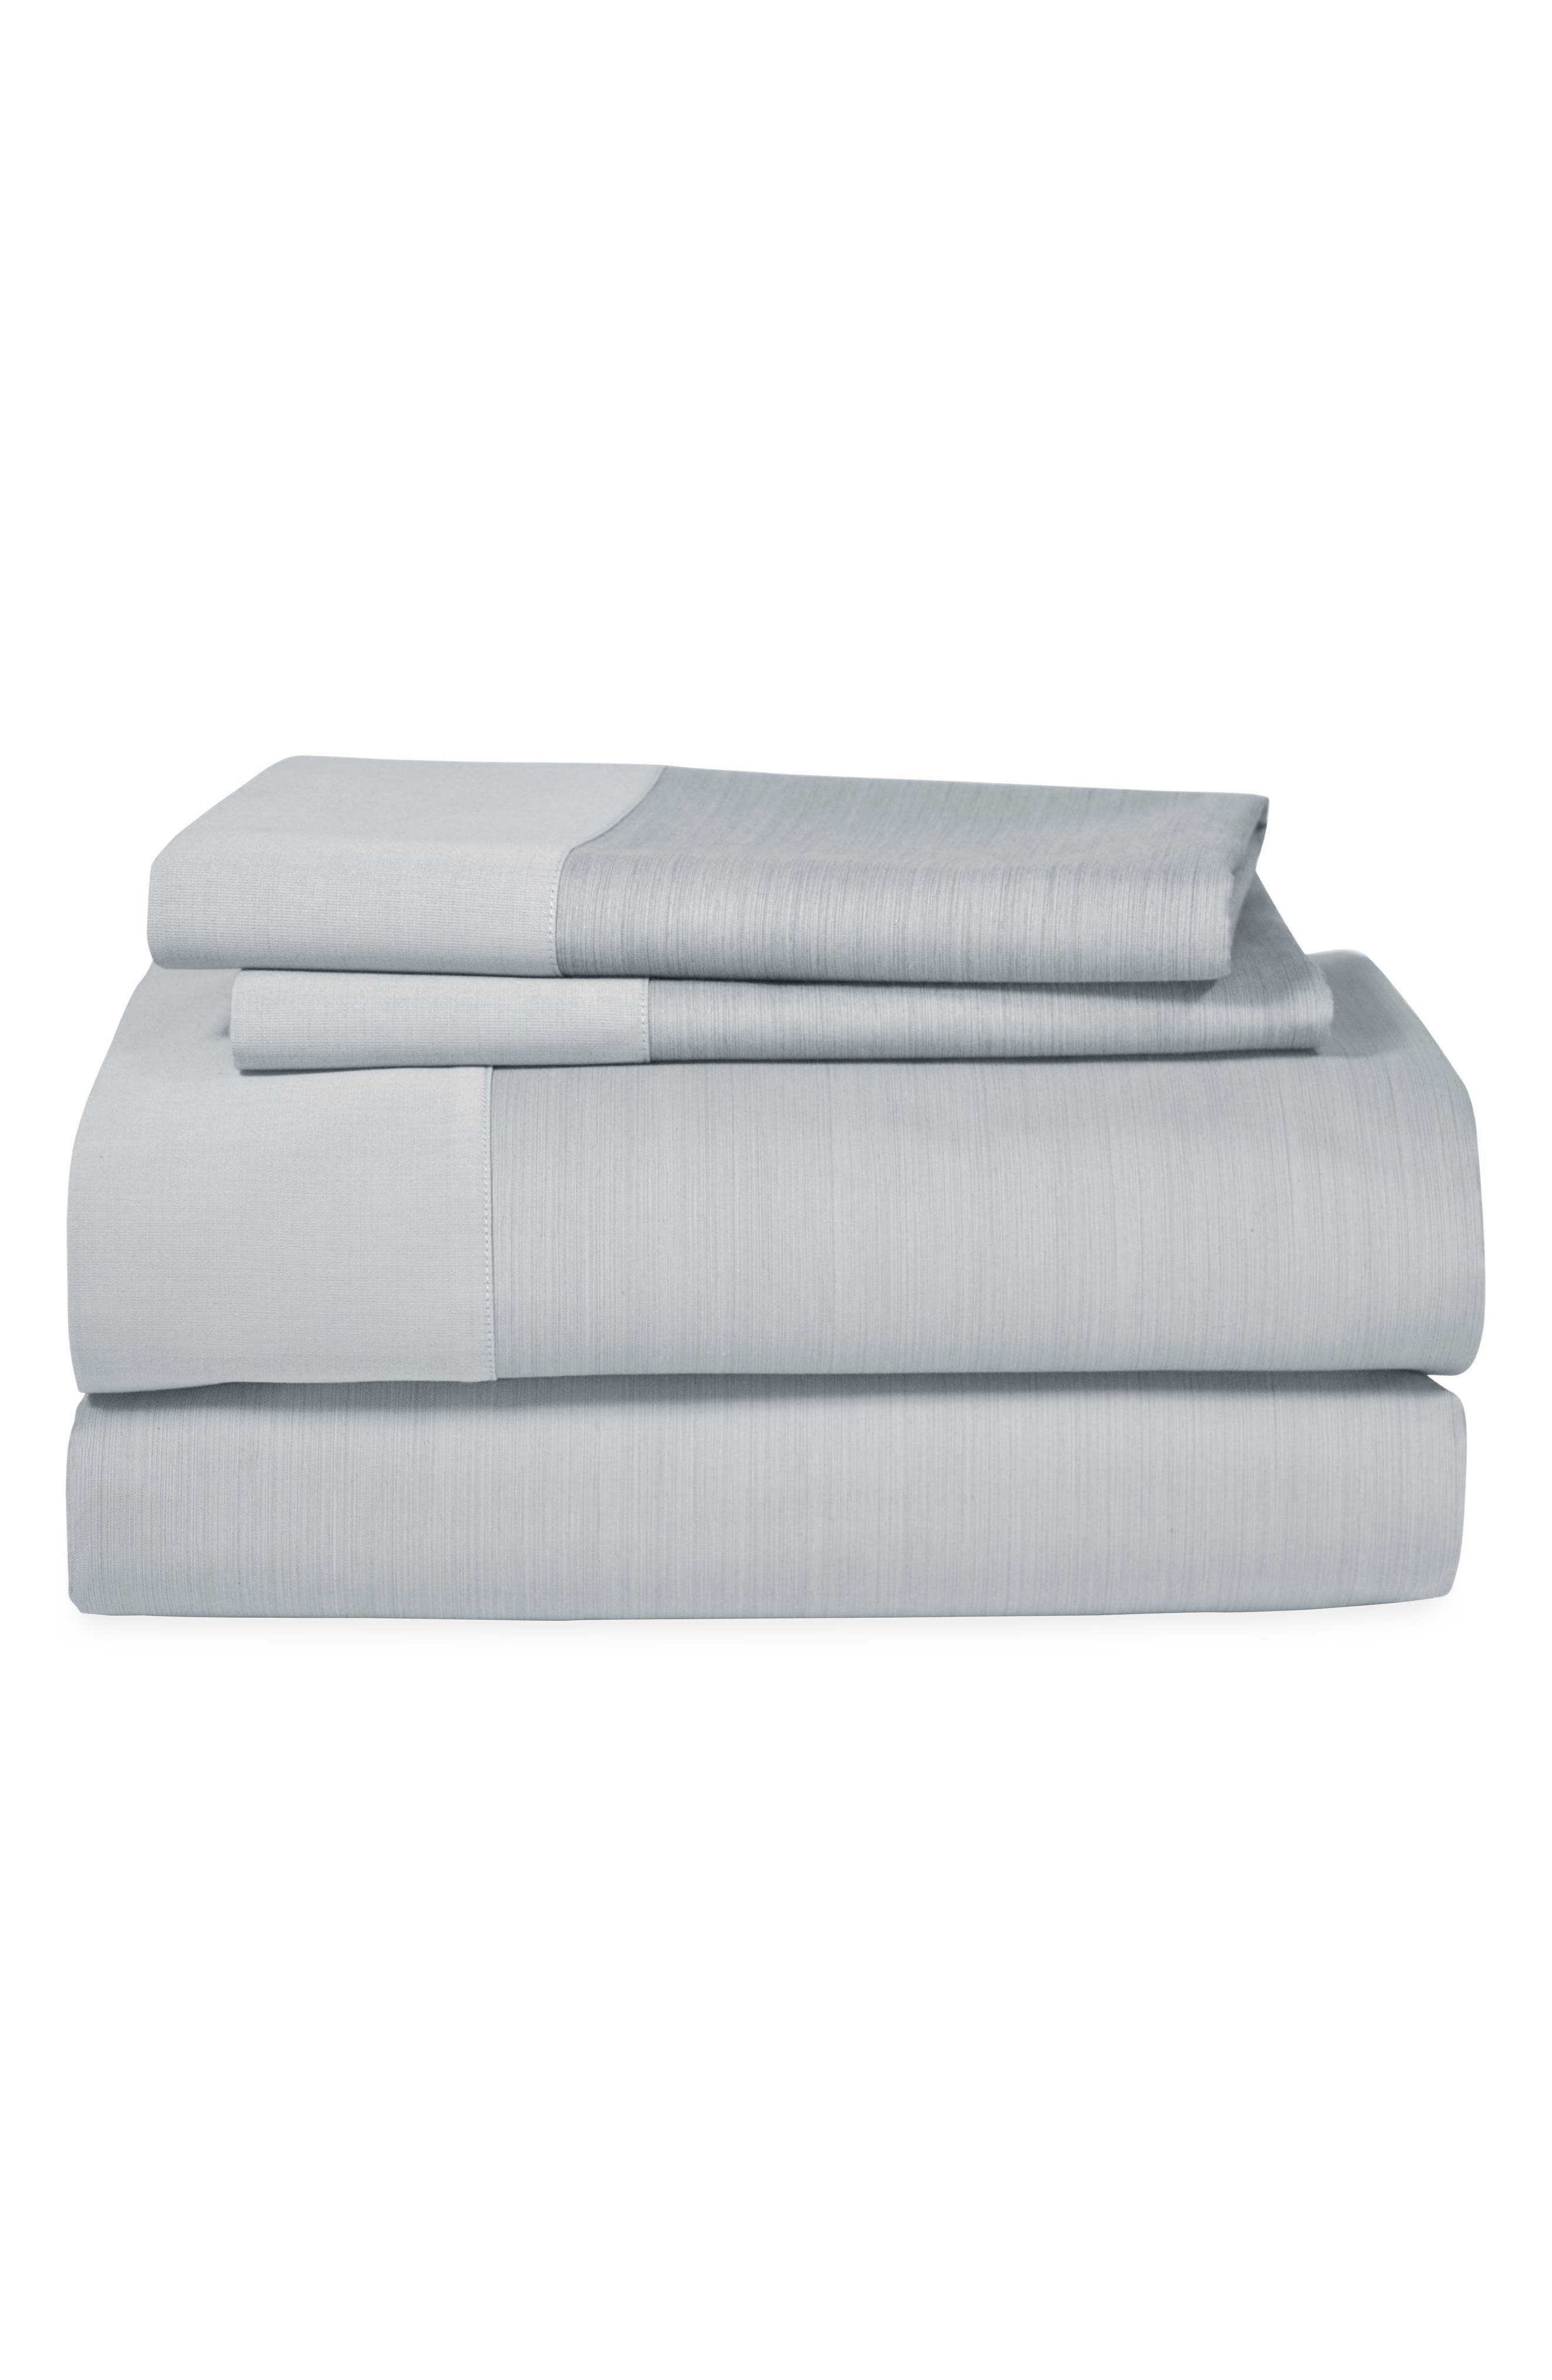 MICHAEL ARAM Striated Band 400 Thread Count Fitted Sheet, Main, color, GRAY